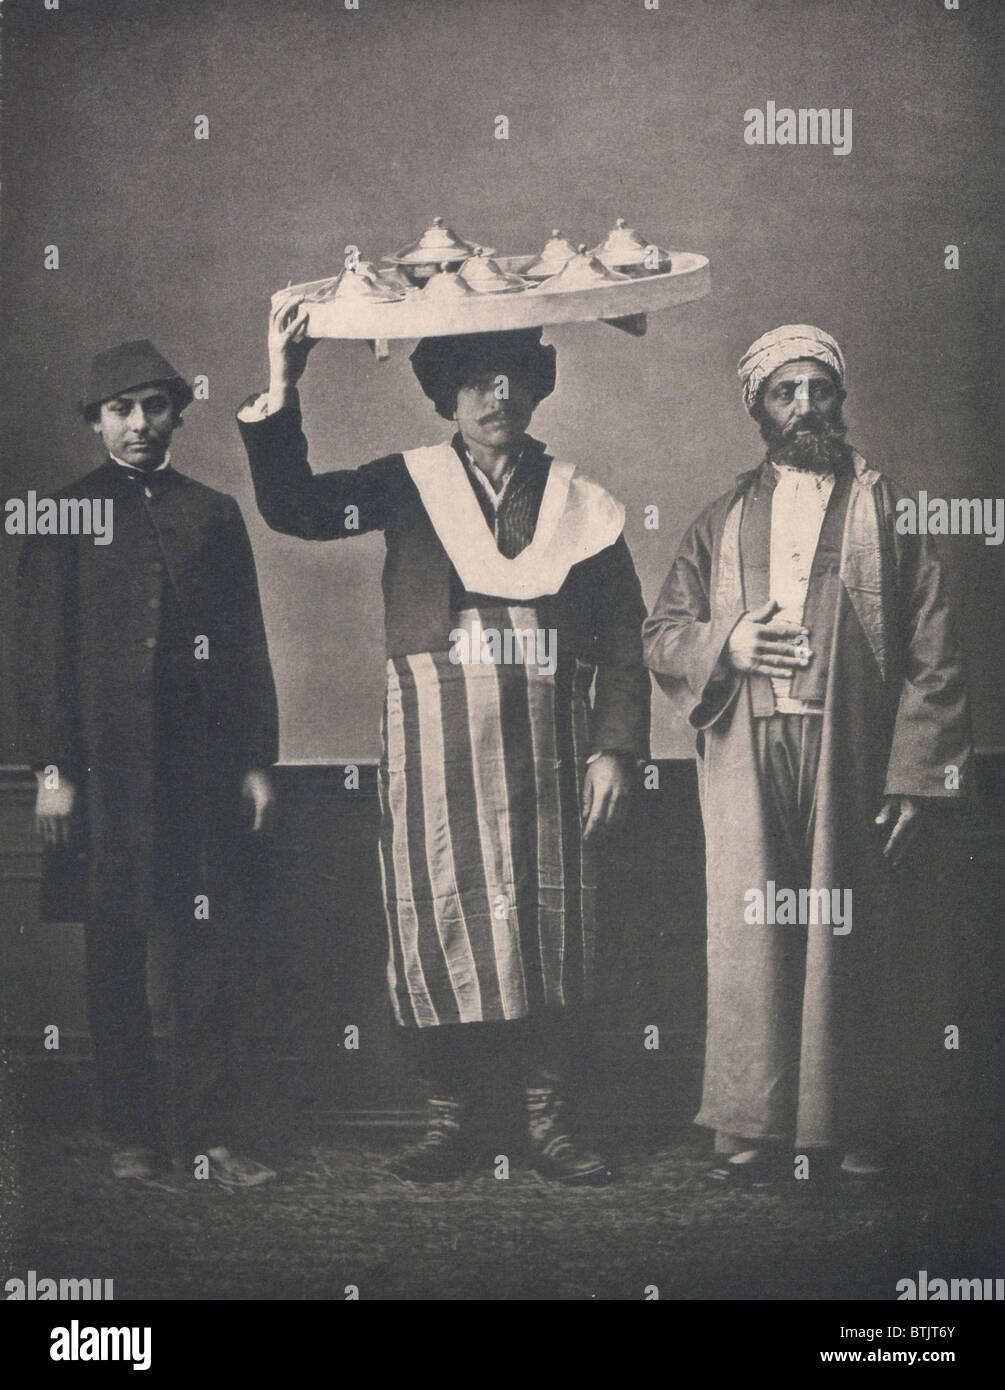 The Ottoman Empire, studio portrait of models wearing clothing from Istanbul, Bourgeois Muslim man of Constantinople - Stock Image